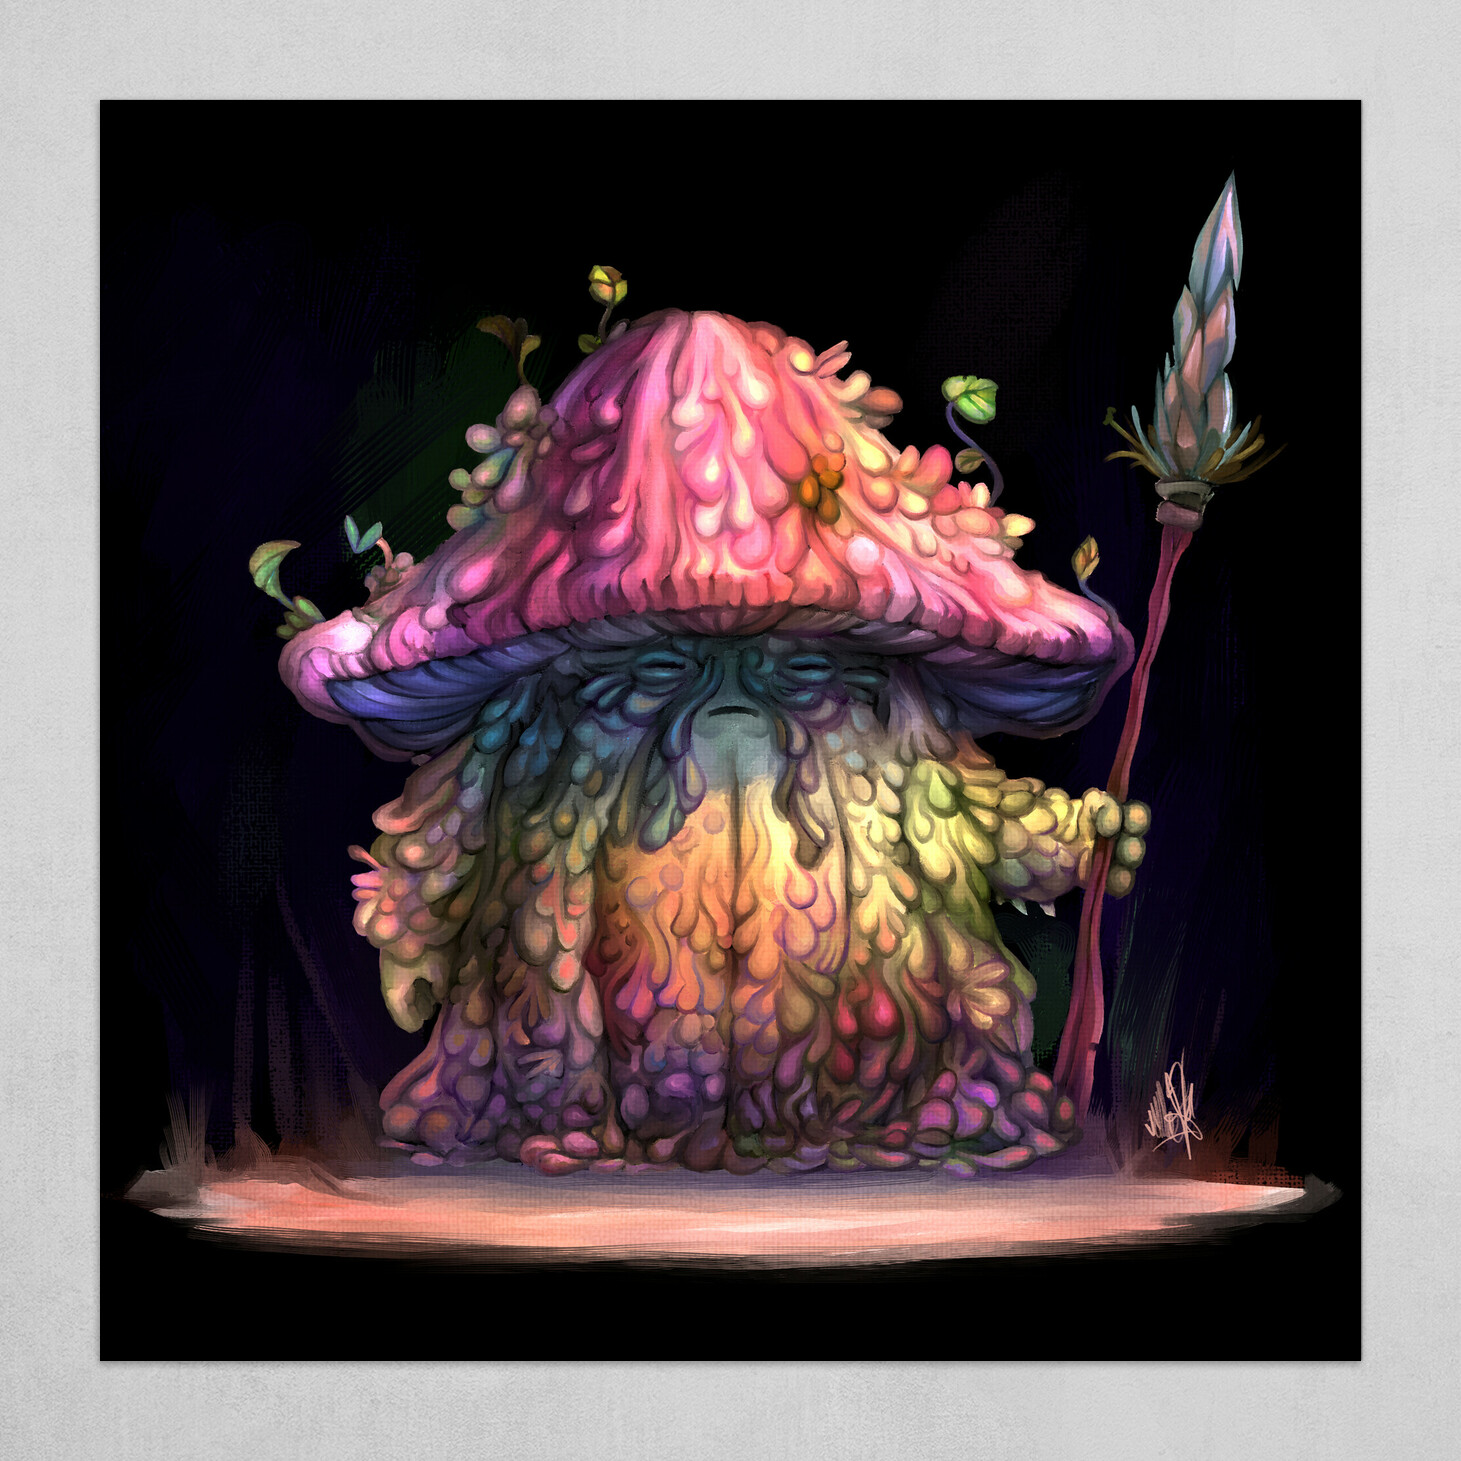 Psychedelic wise mushroom